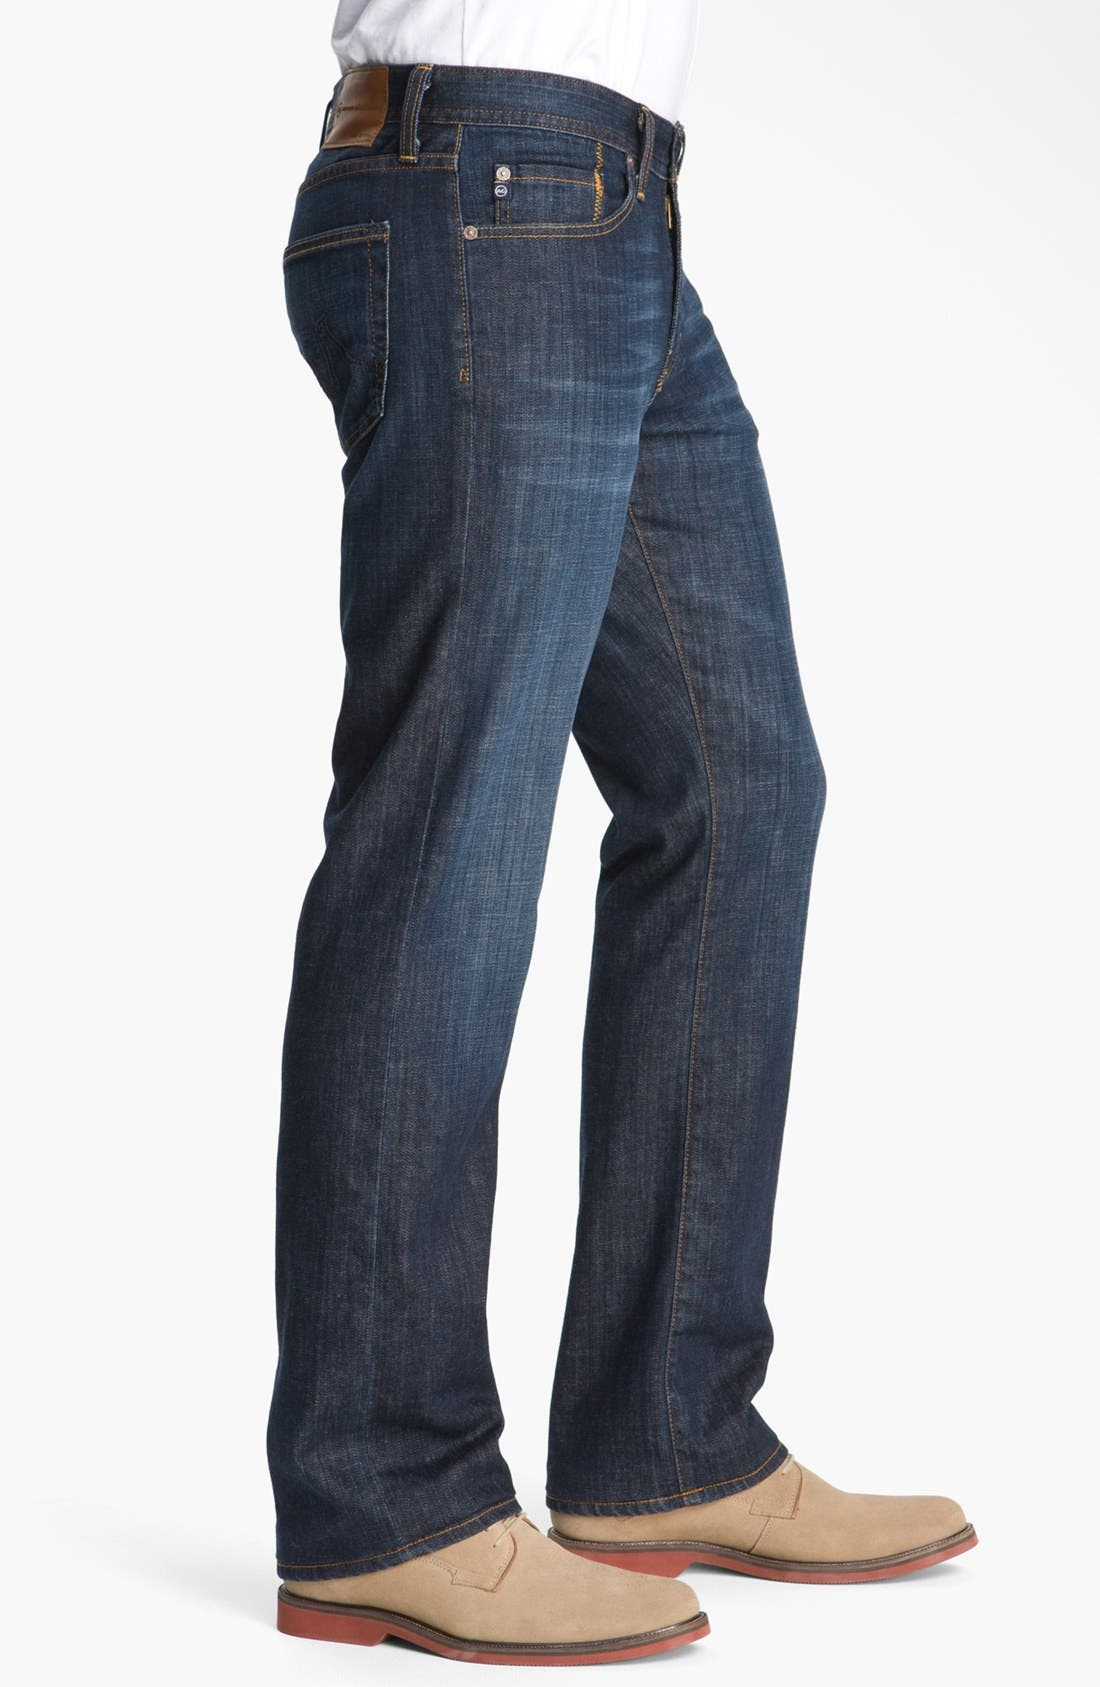 Protégé Straight Leg Jeans,                             Alternate thumbnail 3, color,                             Hunts Wash